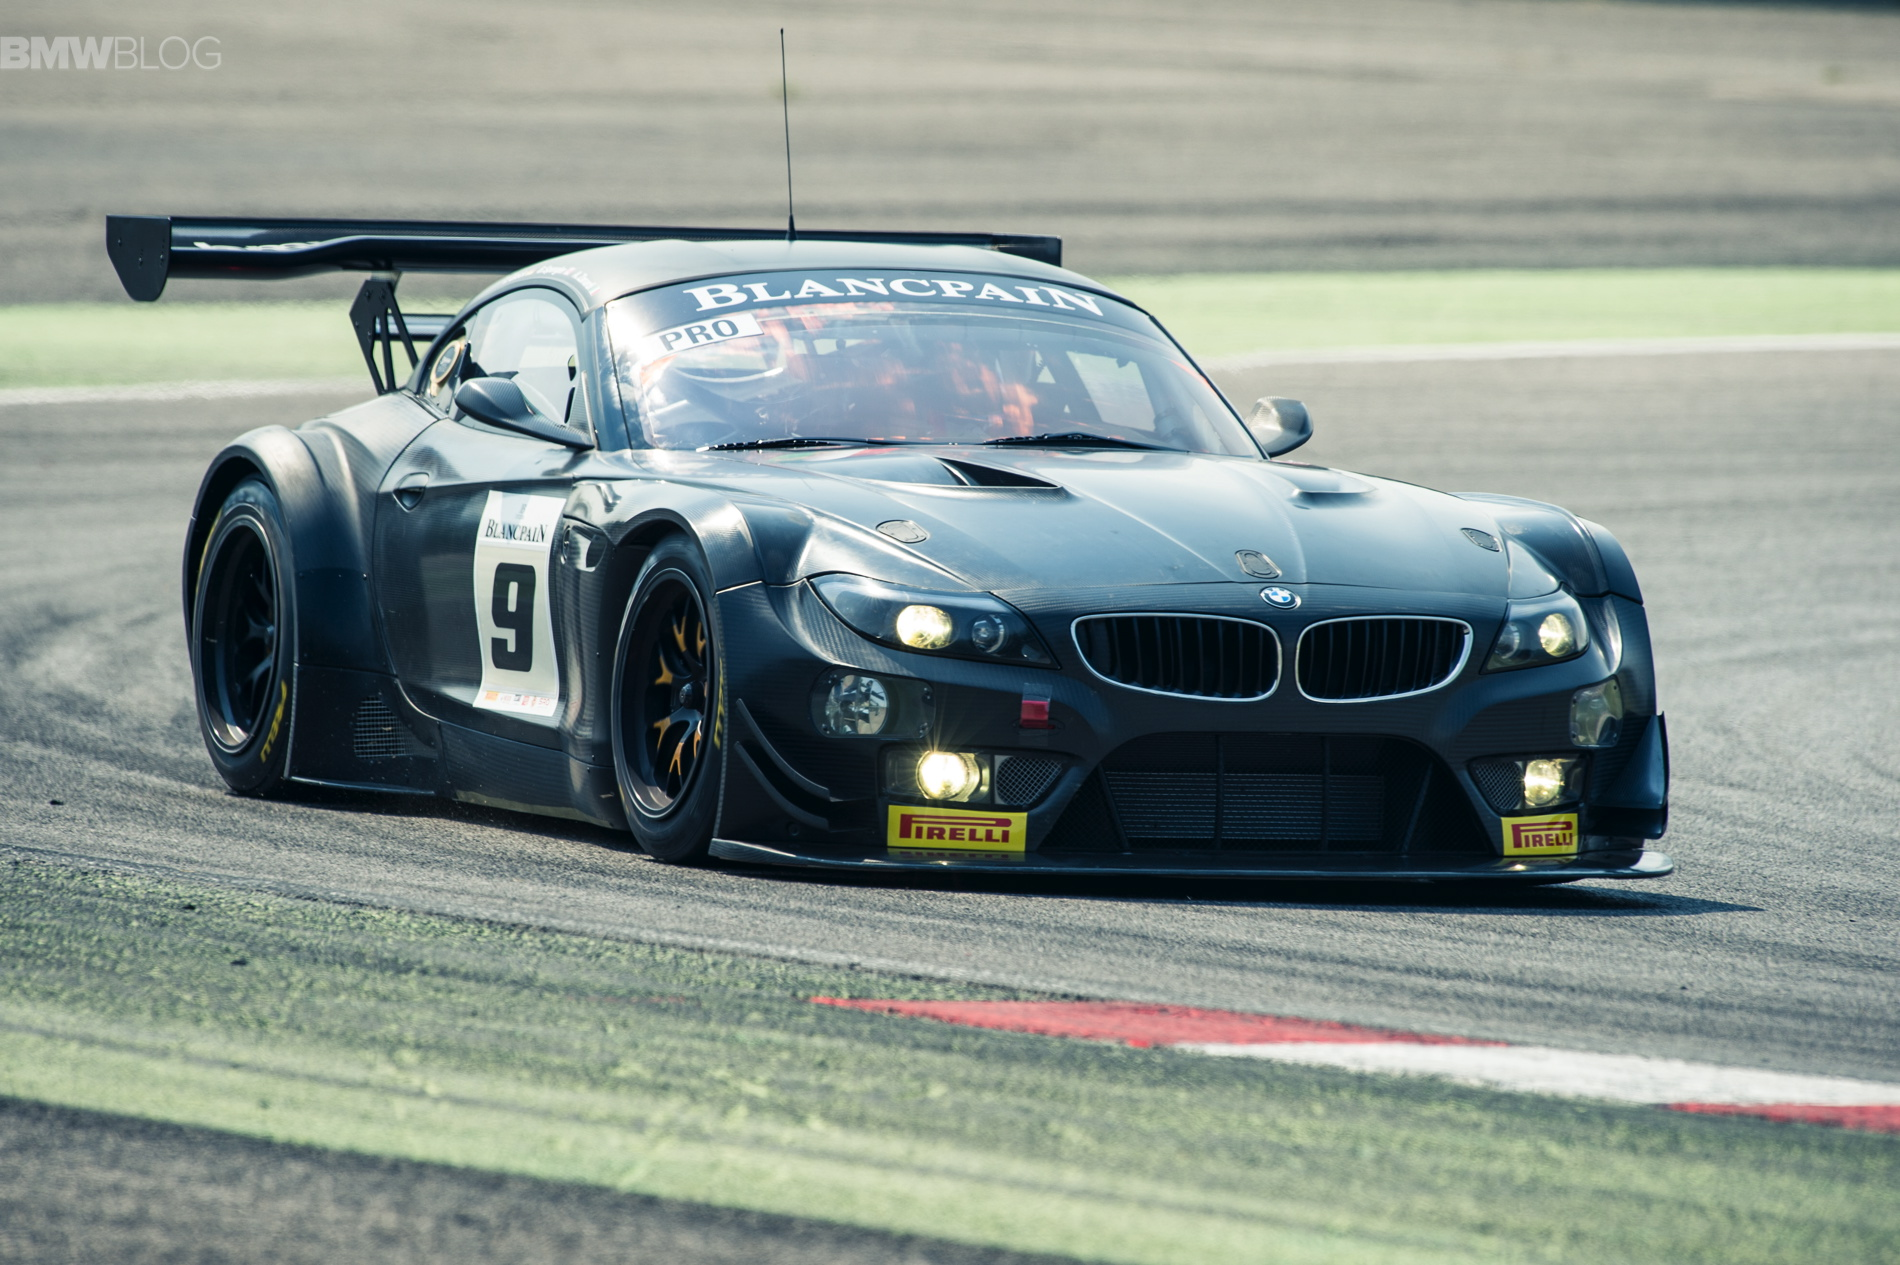 Bmw Motorsport Unveils Numerous Innovative Technical Features For The Bmw Z4 Gt3